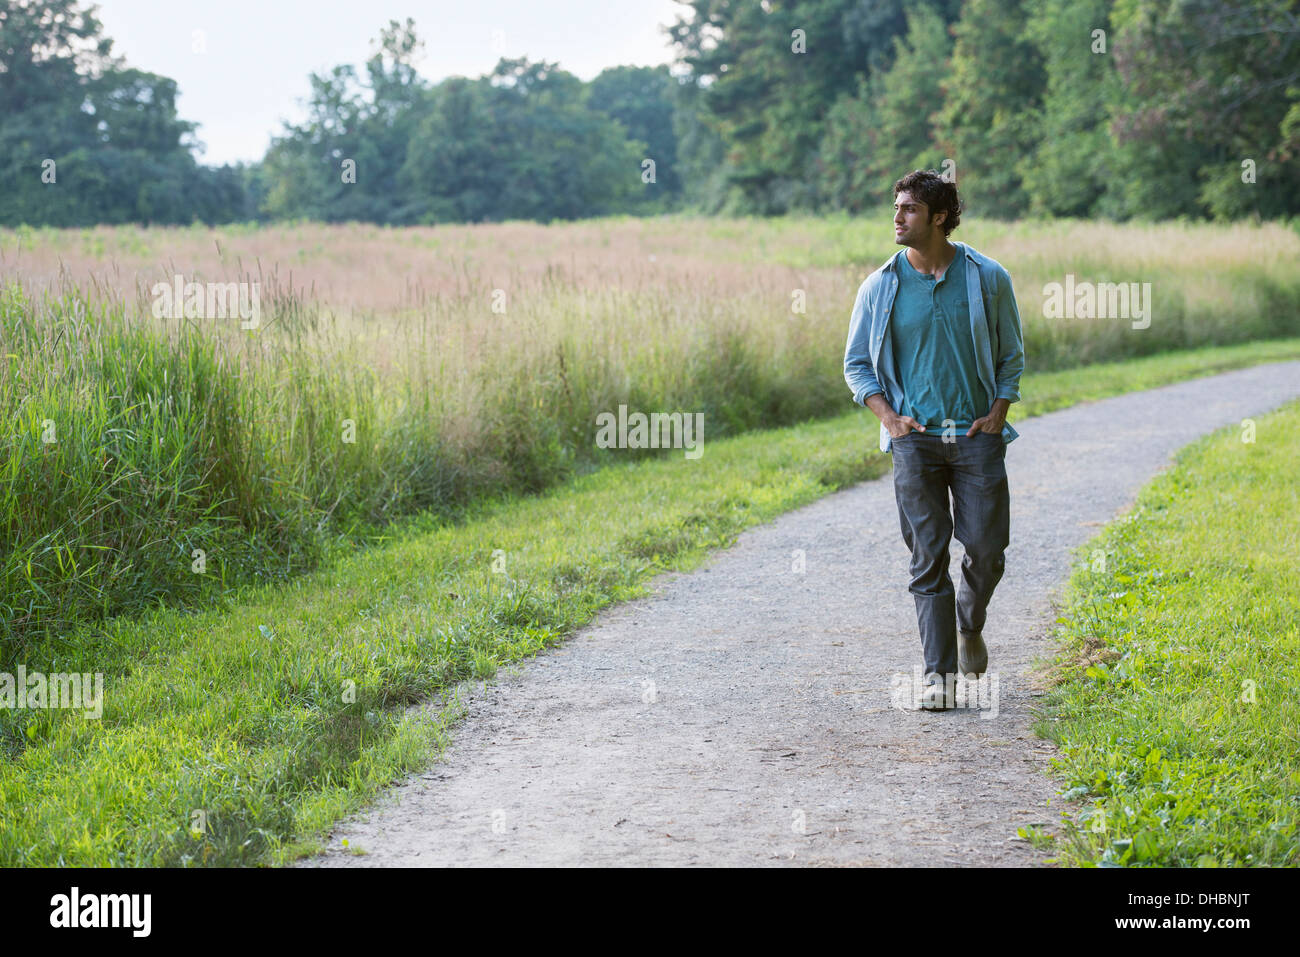 A young man walking down a path with his hands in his pockets. - Stock Image